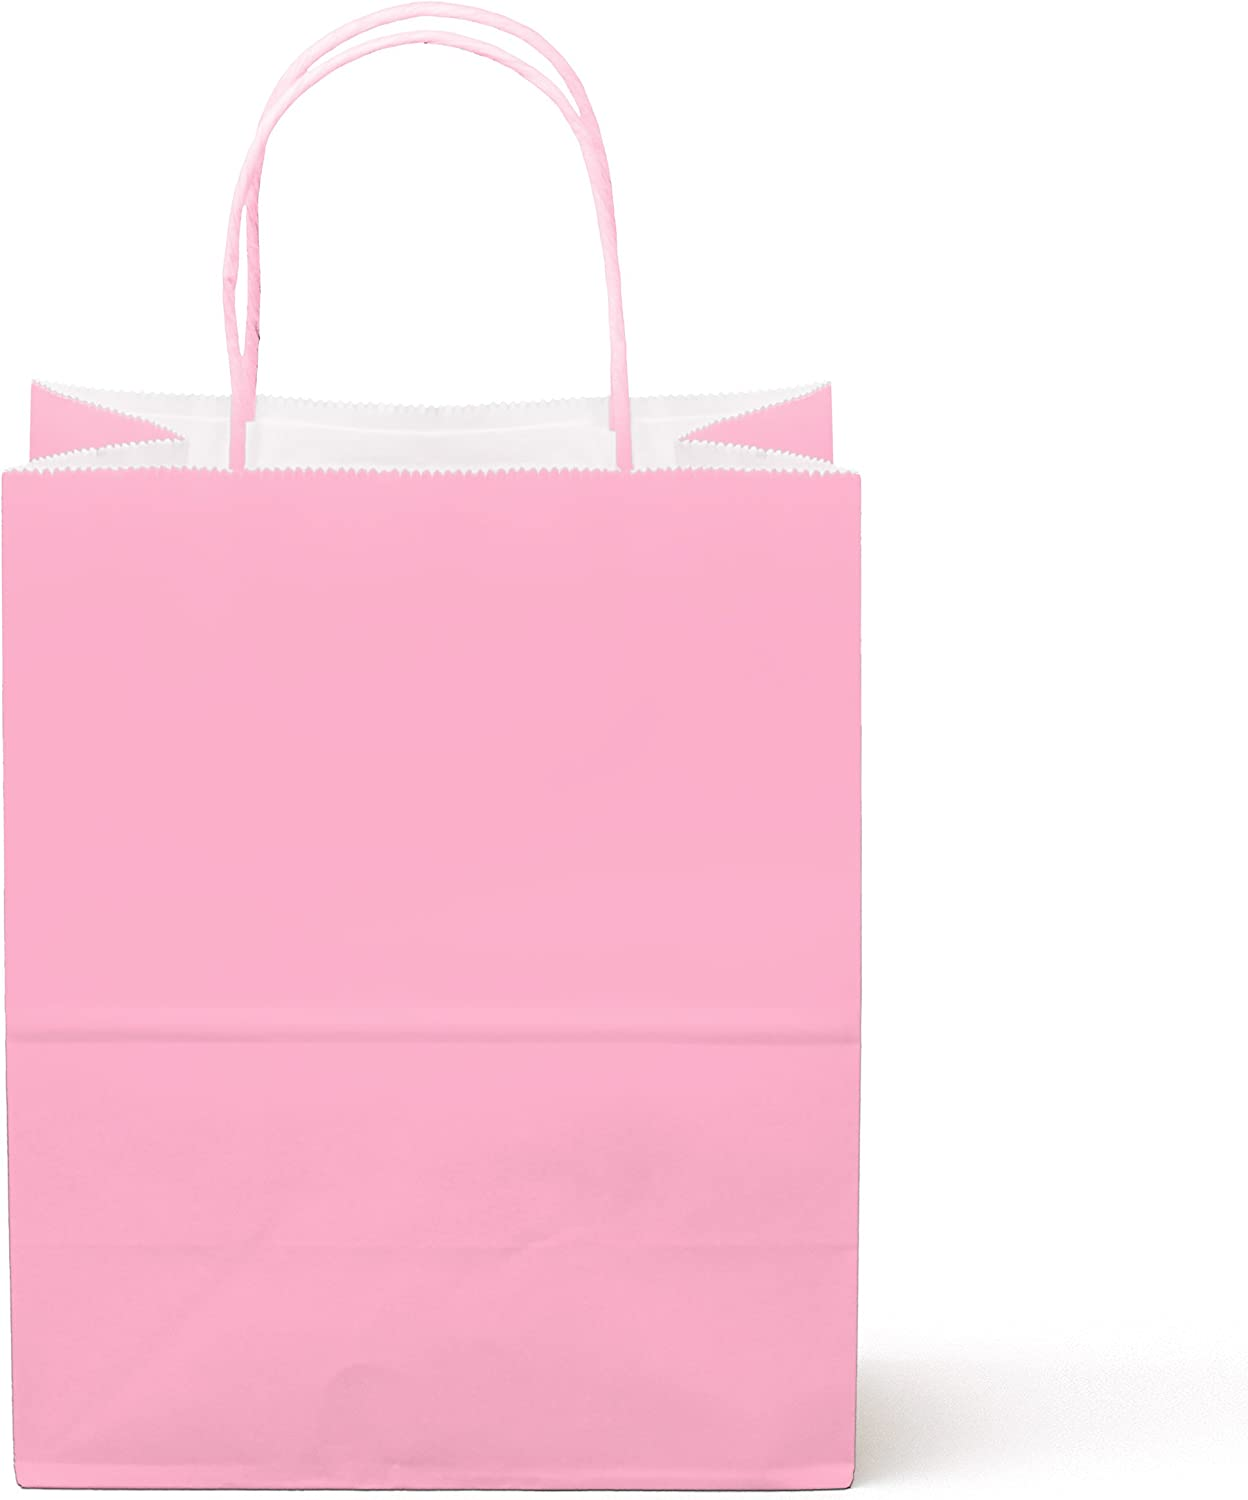 """24 Counts Food Safe Premium Paper and Ink Medium 10"""" X 8"""", Vivid Colored Kraft Bag with Colored Sturdy Handle, Perfect for Goodie Favor DIY Bag, Environmentally Safe (Medium, Light Pink)"""